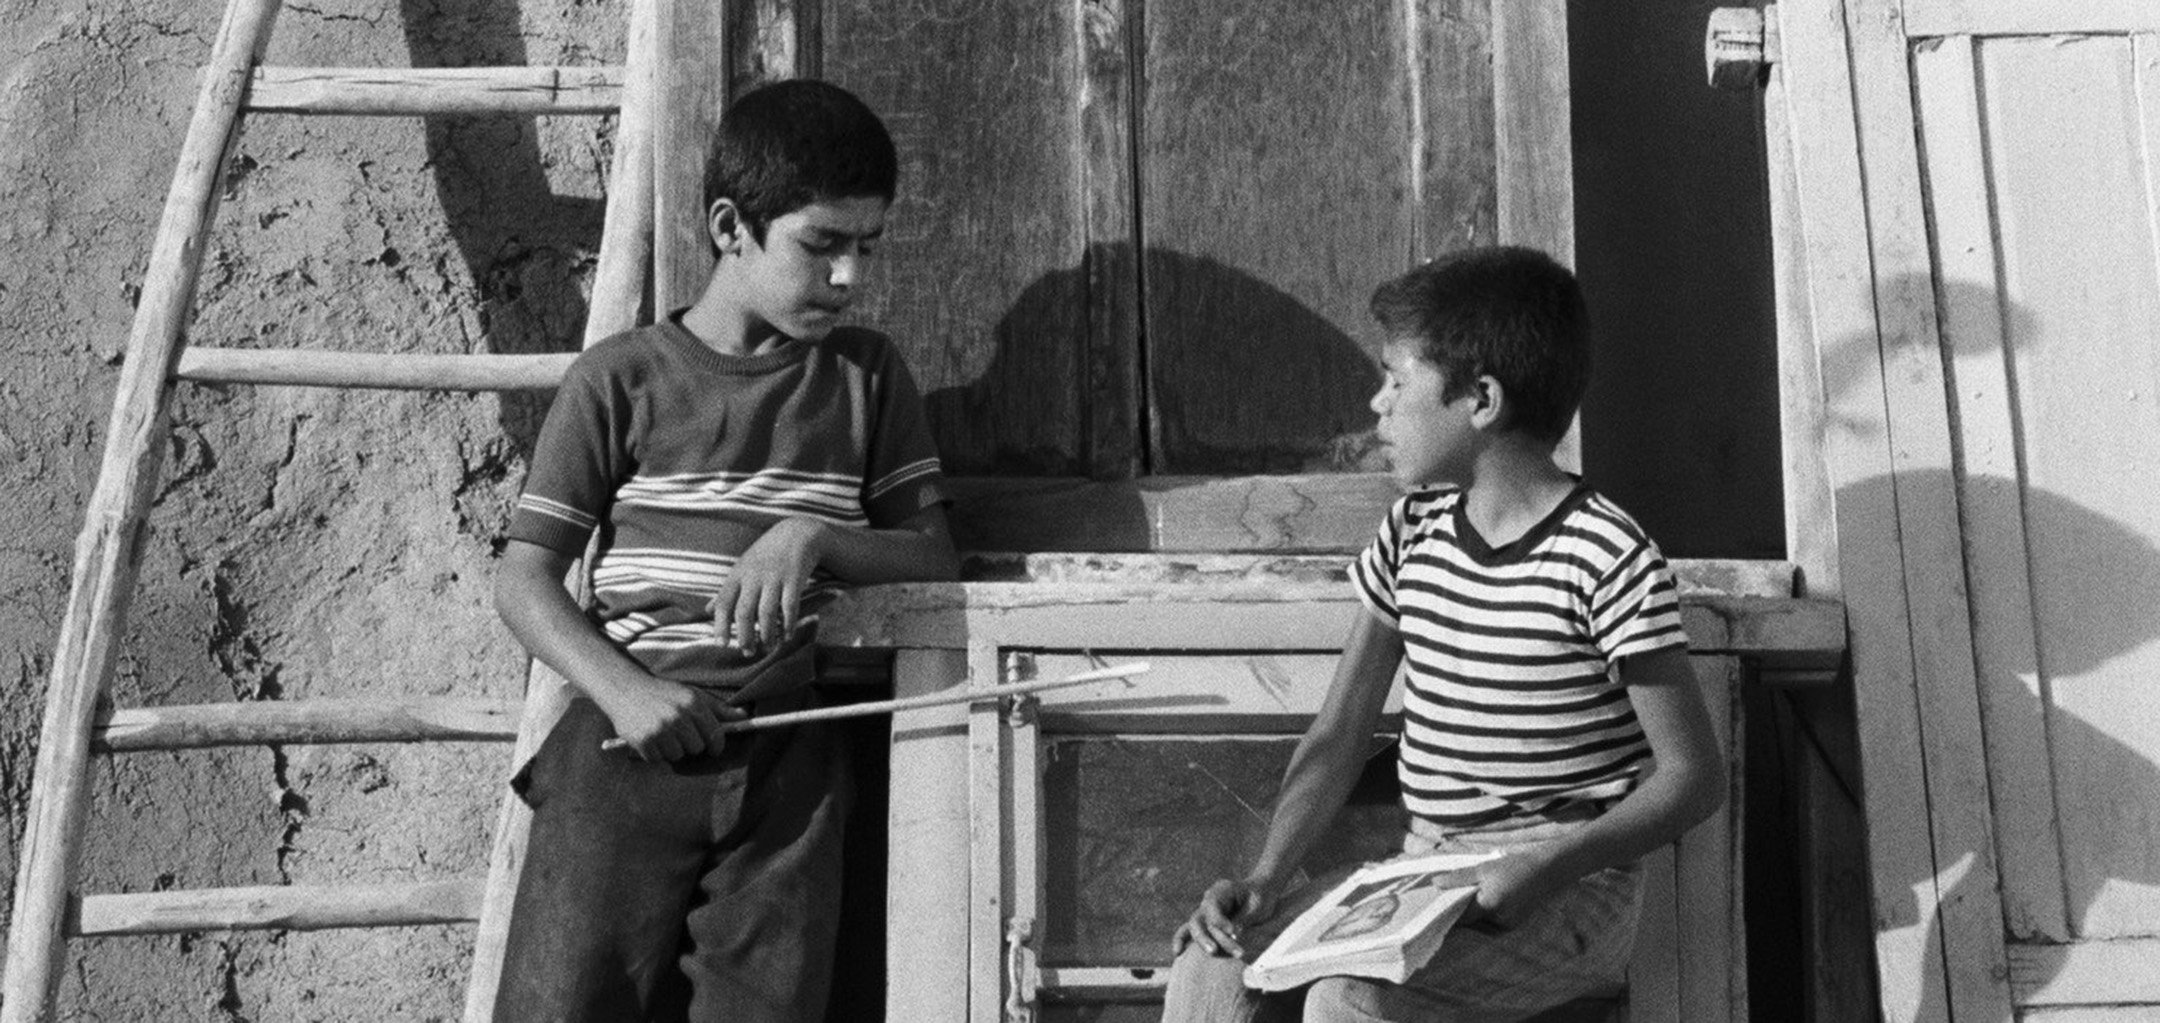 Two boys chattting outside a house in a still from 'Traveller'